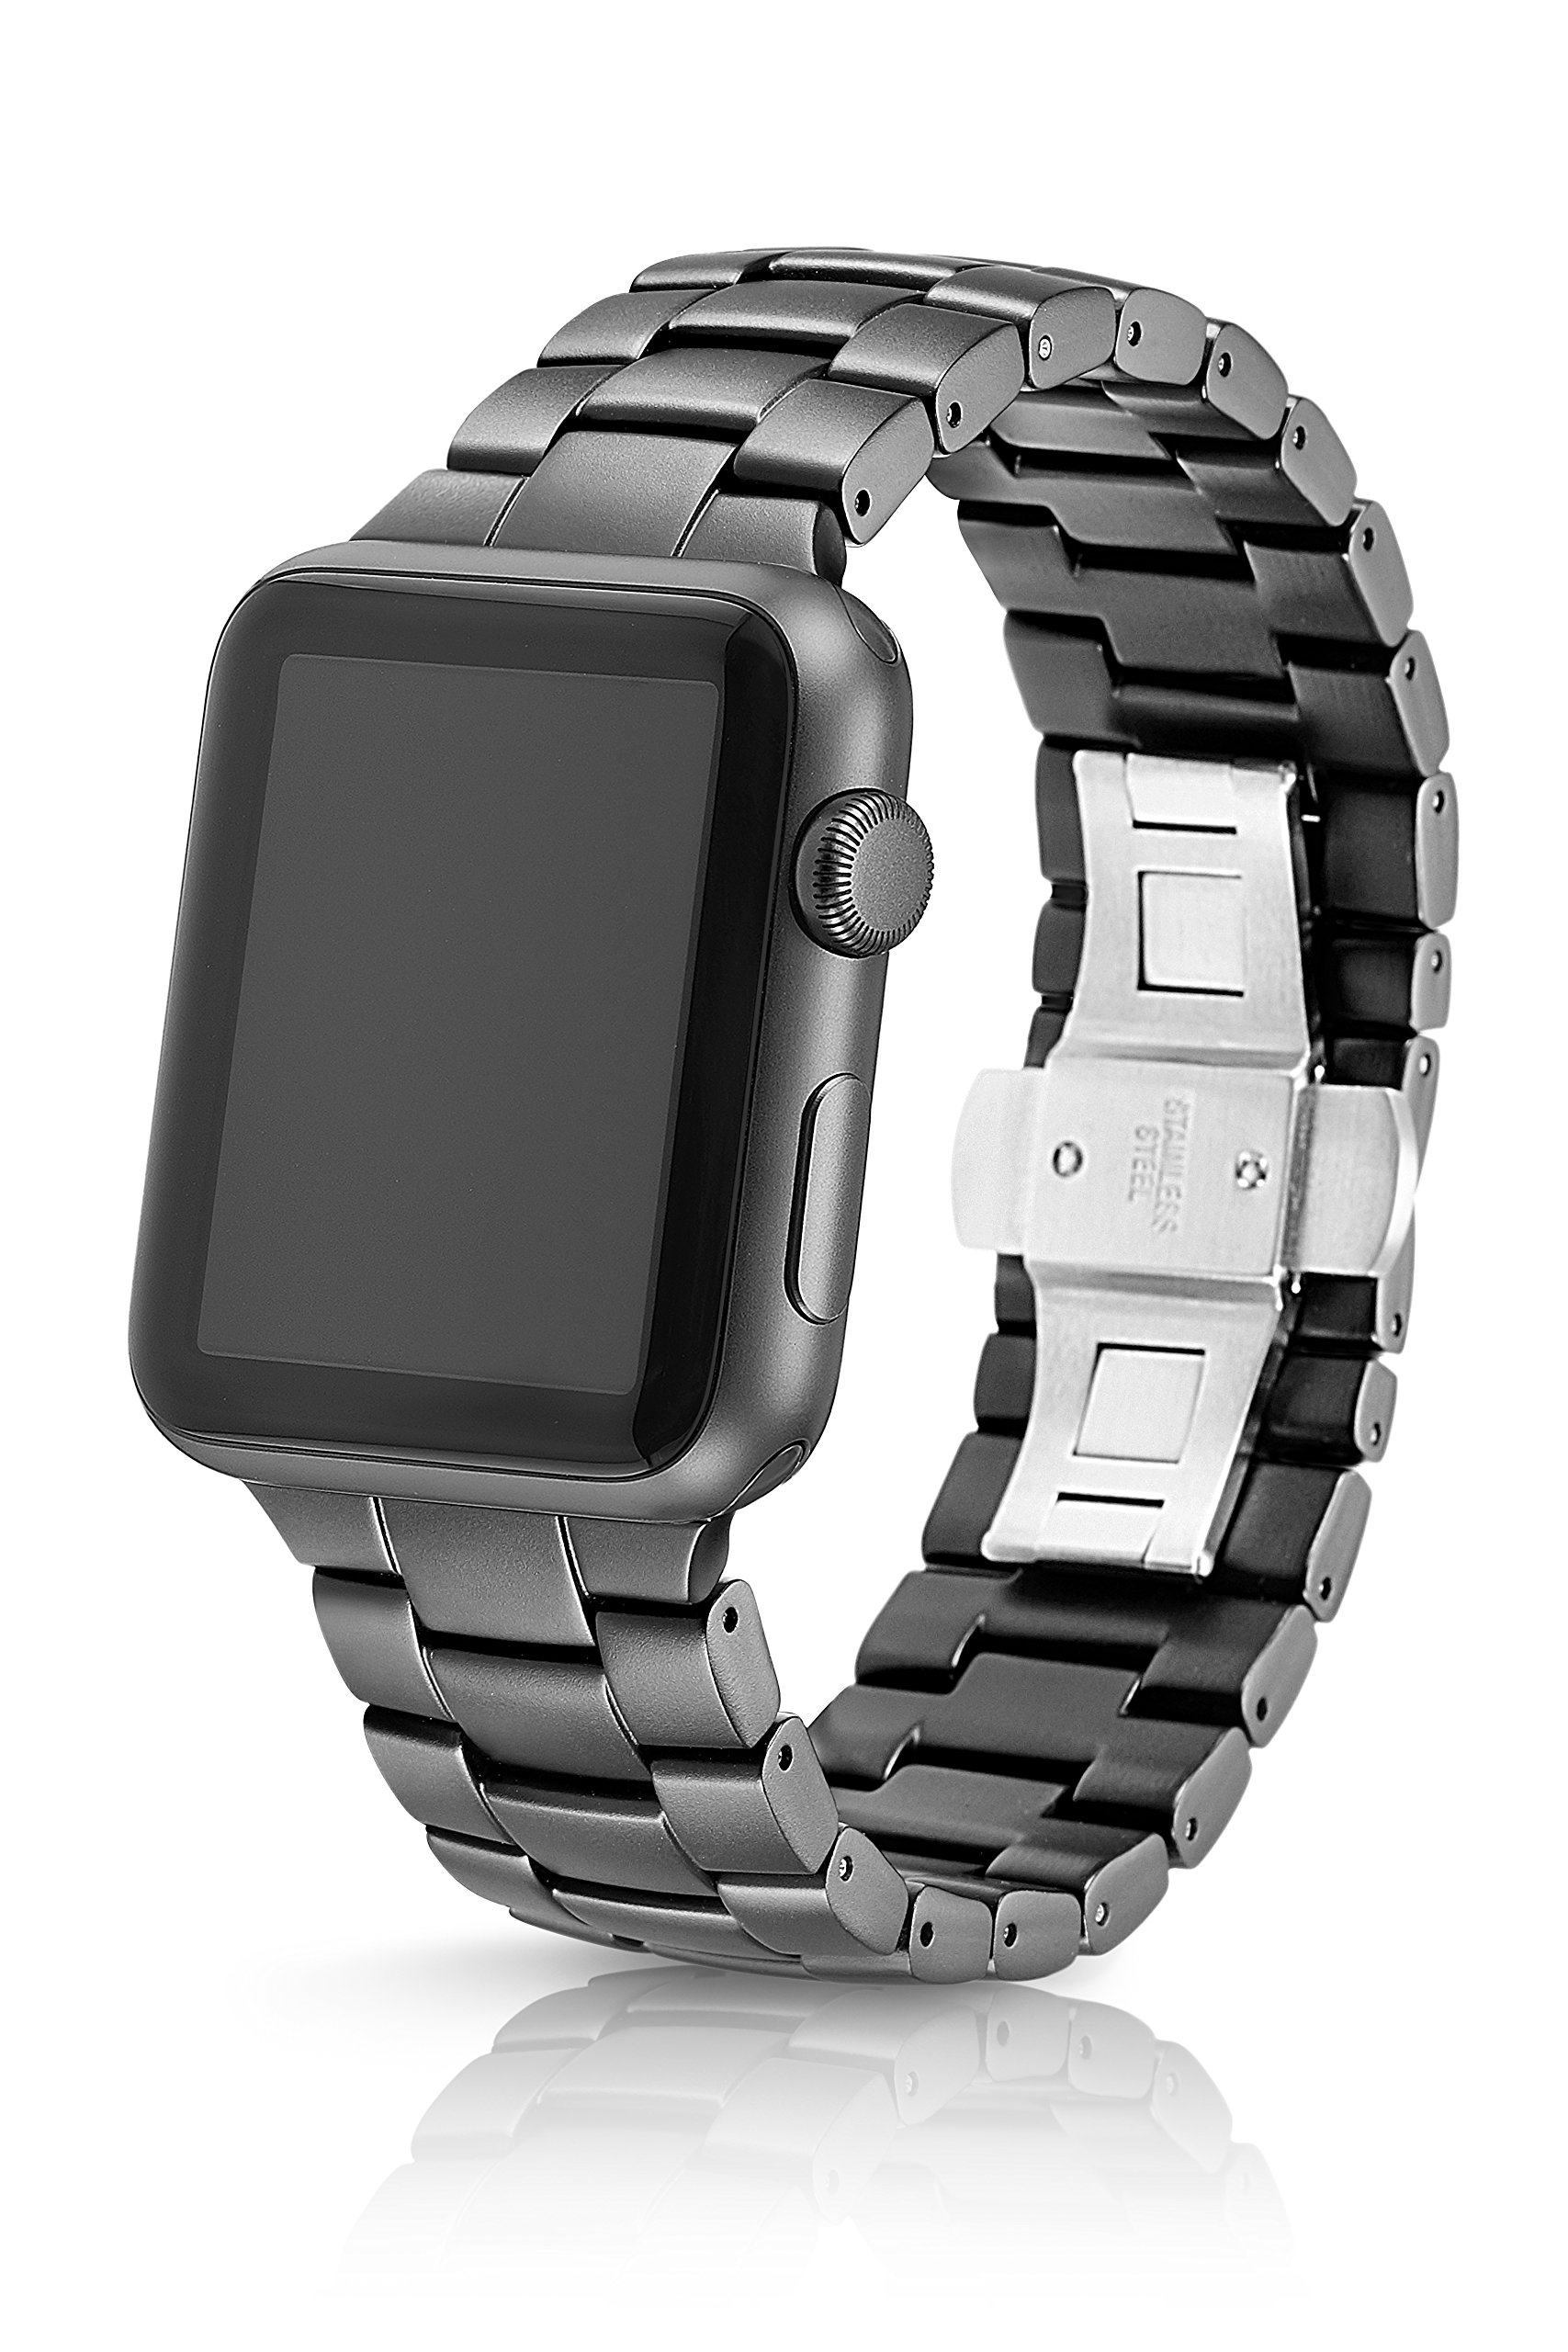 42mm JUUK Cosmic Grey Velo Premium Apple Watch band, made with Swiss quality using aircraft grade, hard anodized 6000 series aluminum with a solid stainless steel deployant buckle (matte grey)